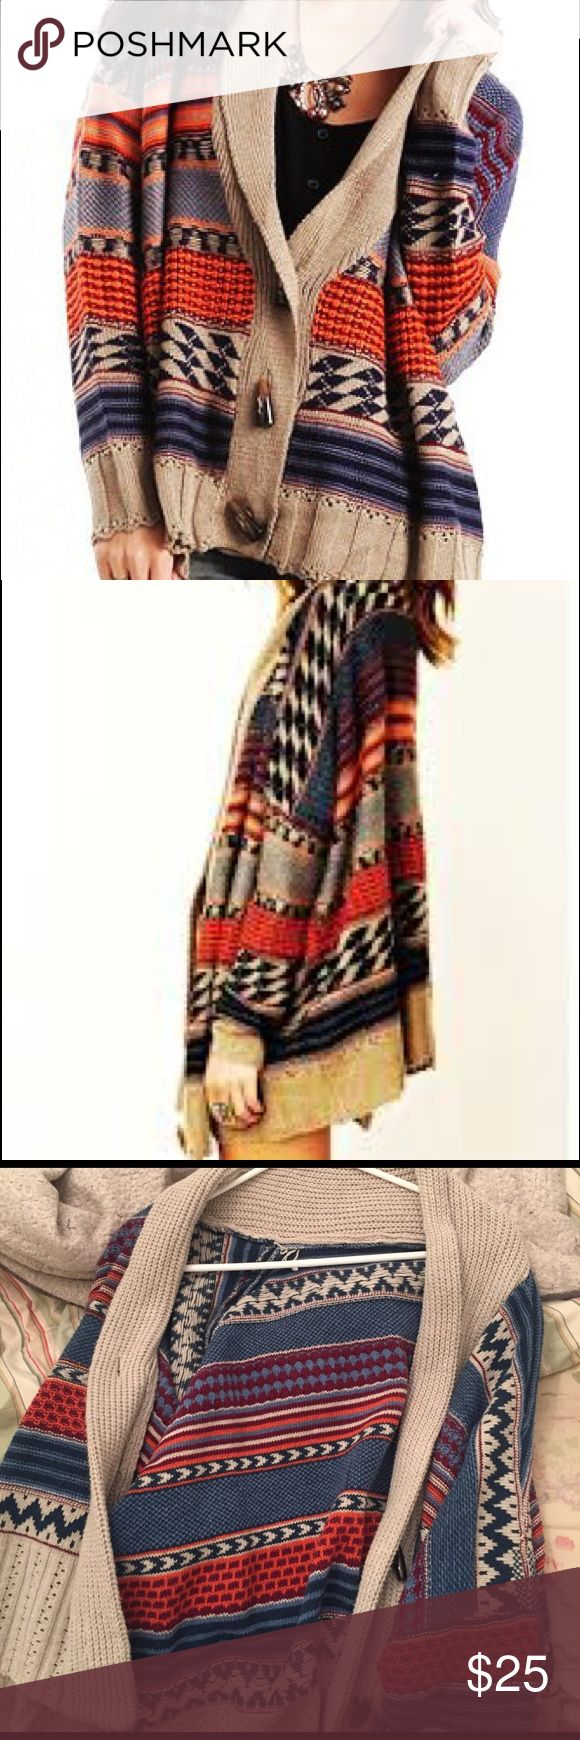 Oversized Tribal Cardigan Sweater Gorgeous oversized cardigan from an online boutique; worn once or twice but no damage. Not Free People; tagging for likeness (bought from an online boutique) Free People Sweaters Cardigans